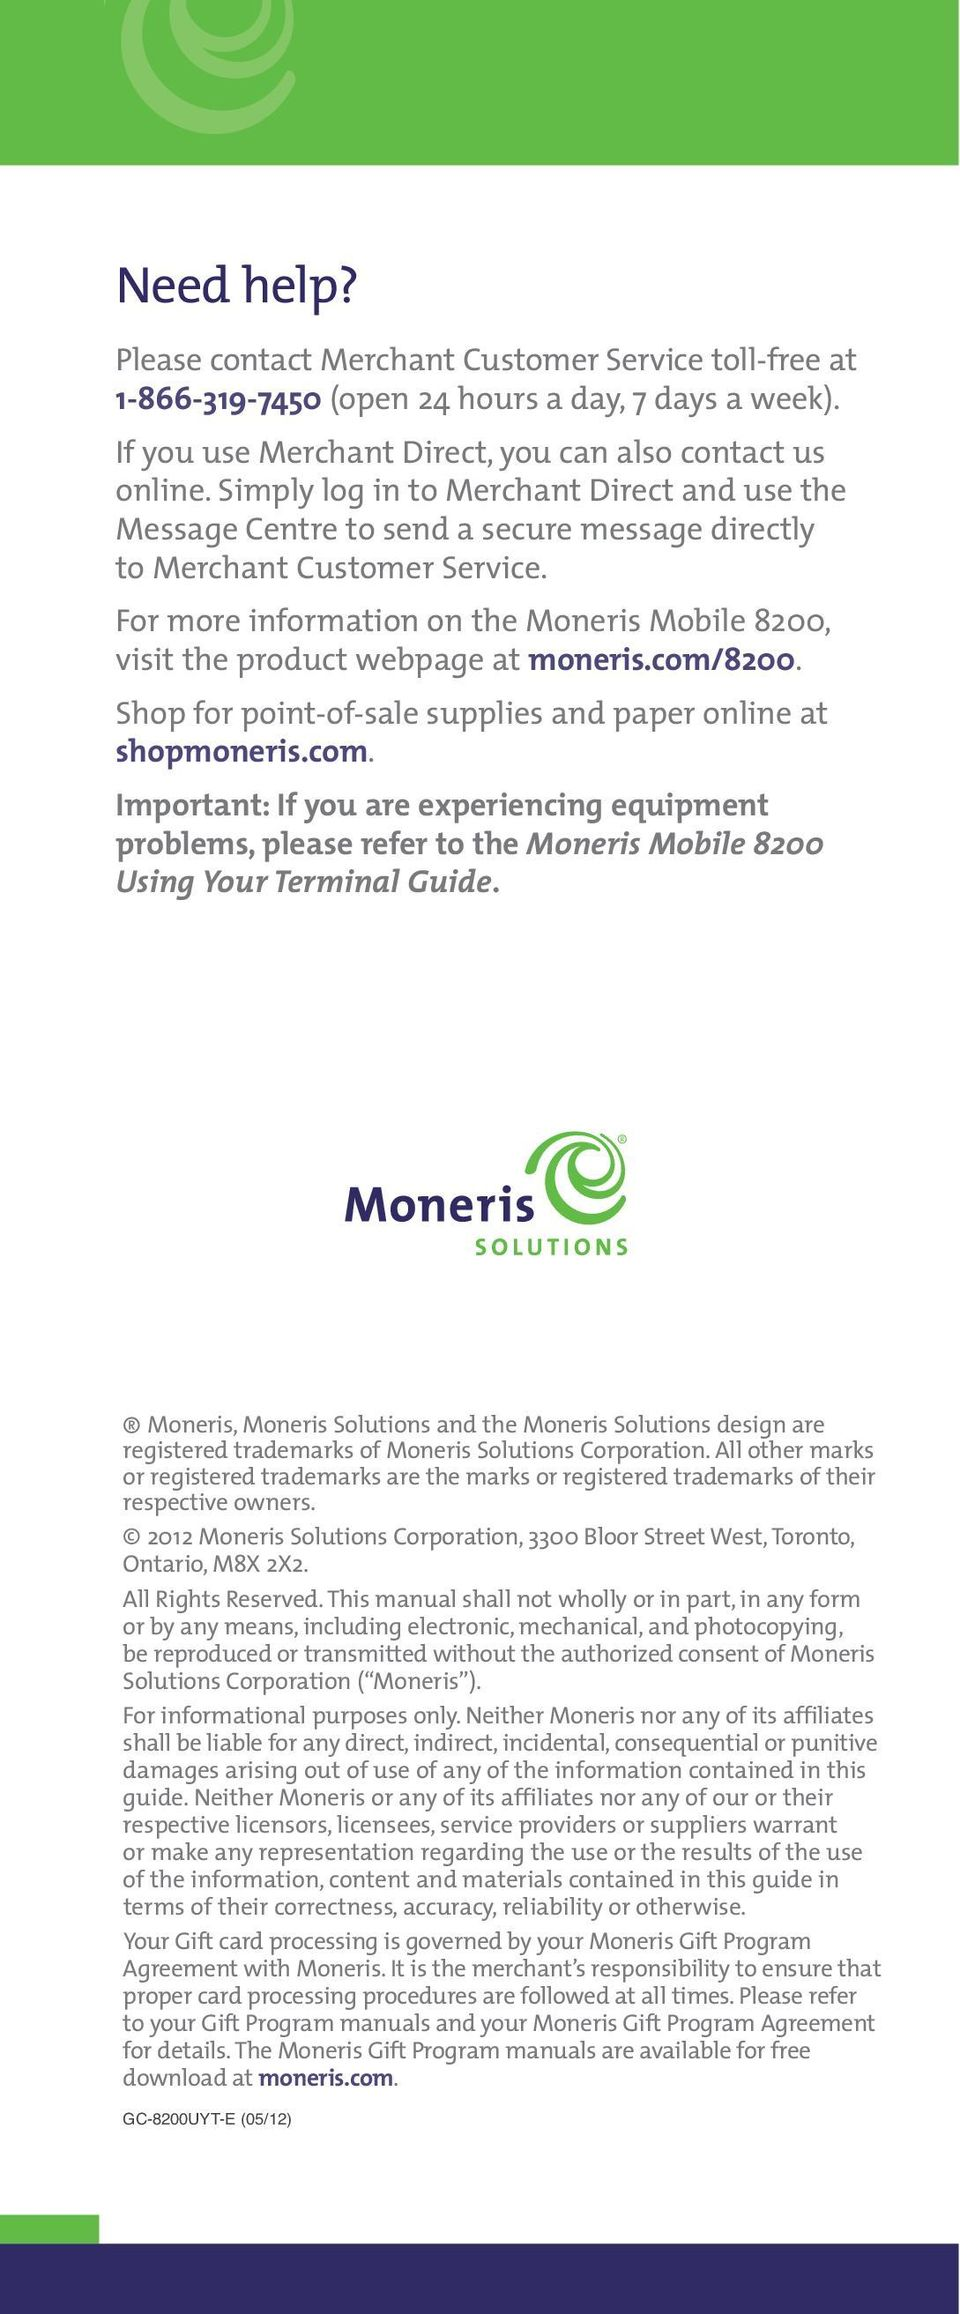 For more information on the Moneris Mobile 8200, visit the product webpage at moneris.com/